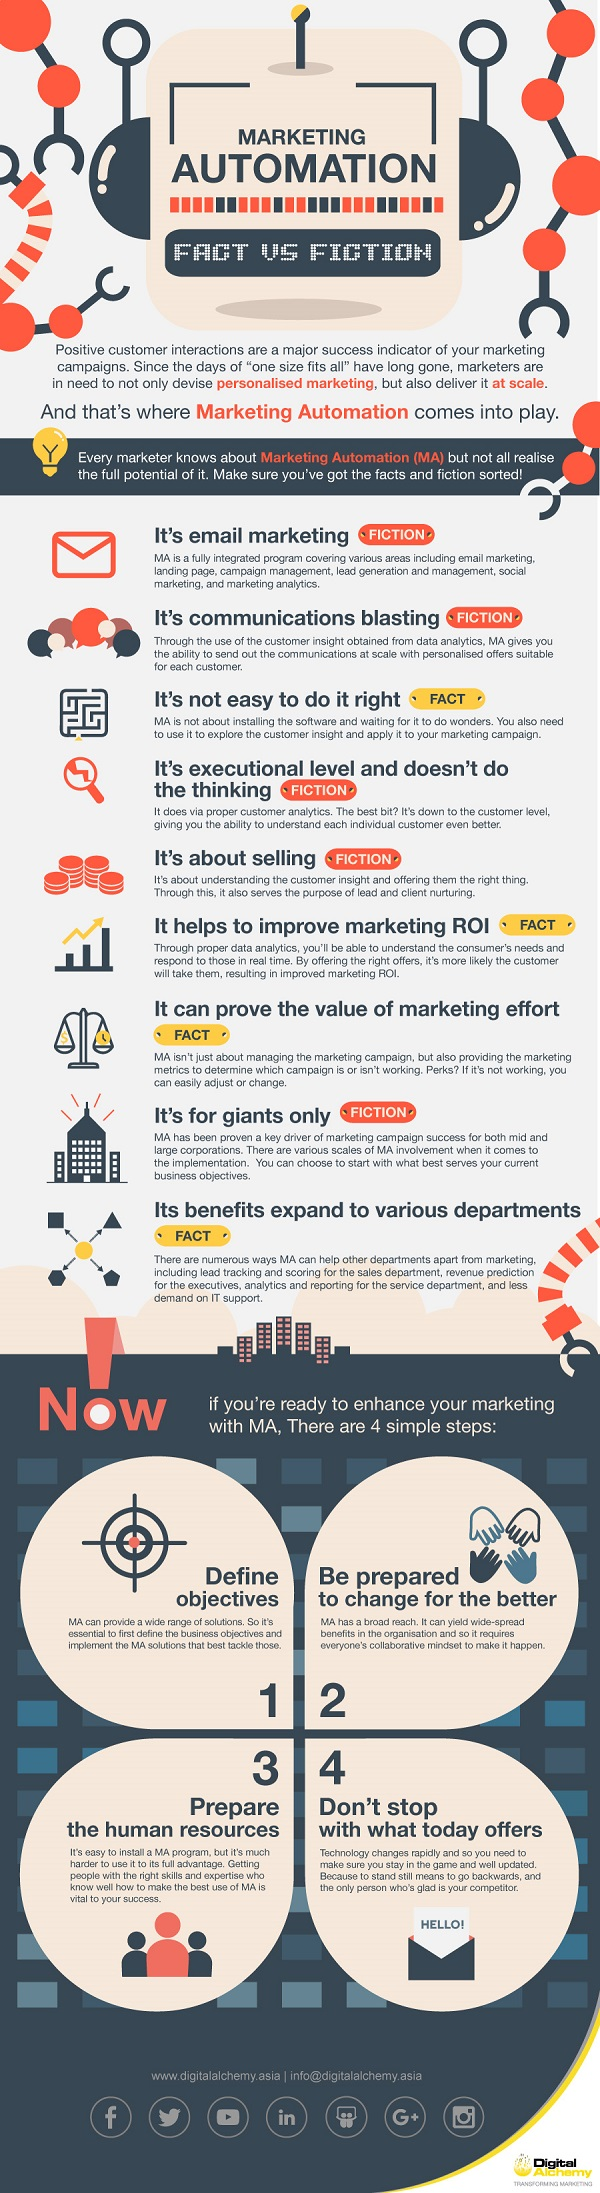 da_infographic_marketing_automation_v4asia_withoutabout